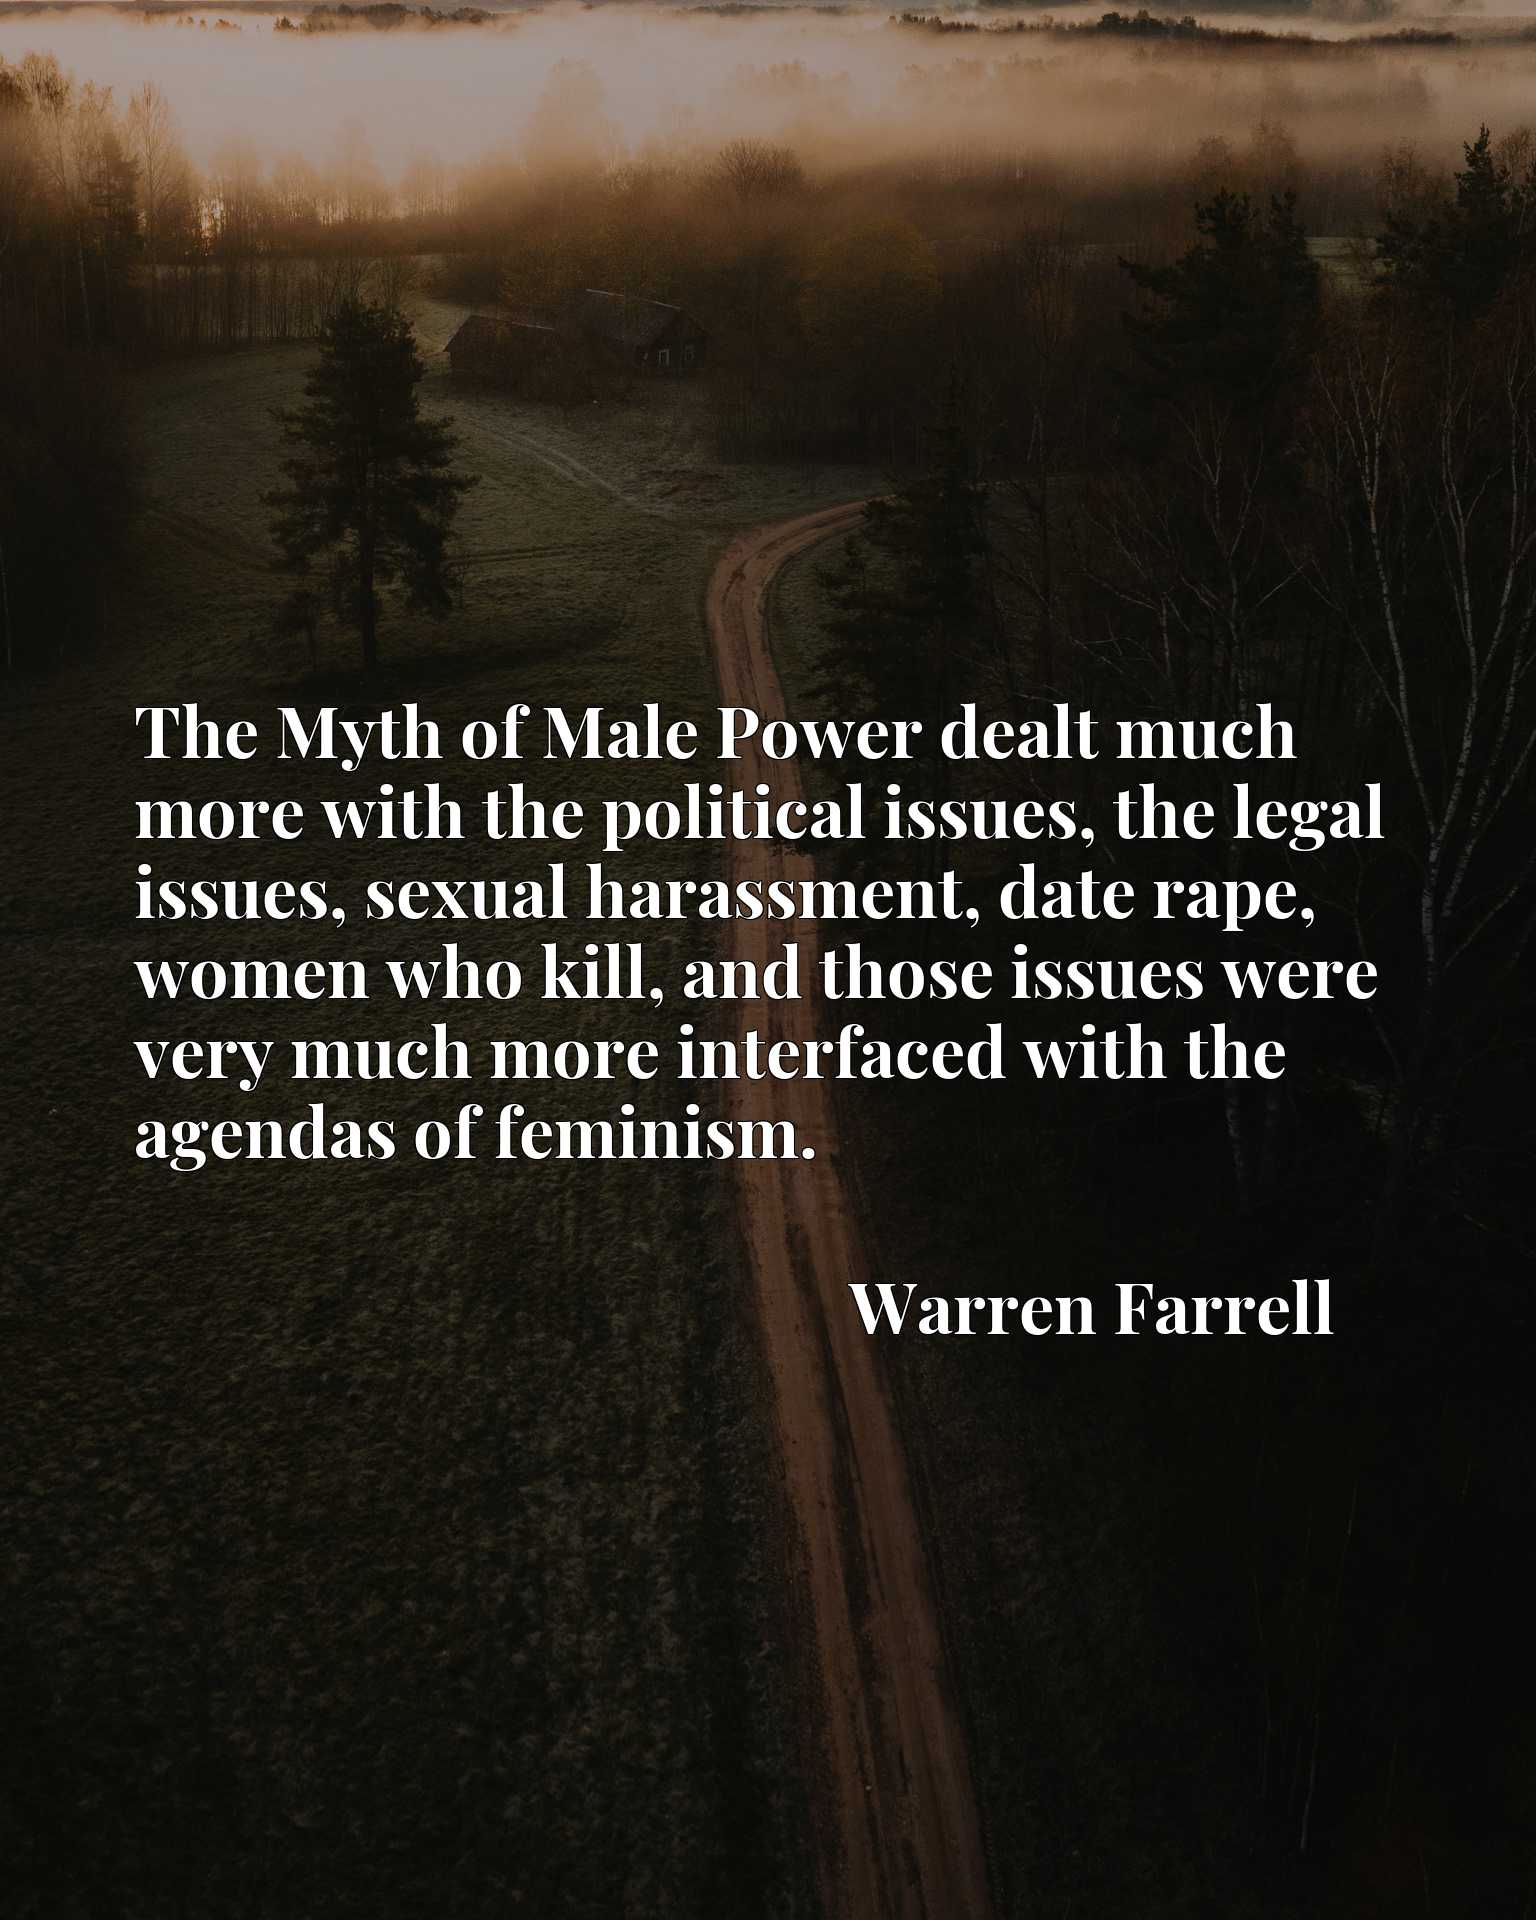 Quote Picture :The Myth of Male Power dealt much more with the political issues, the legal issues, sexual harassment, date rape, women who kill, and those issues were very much more interfaced with the agendas of feminism.